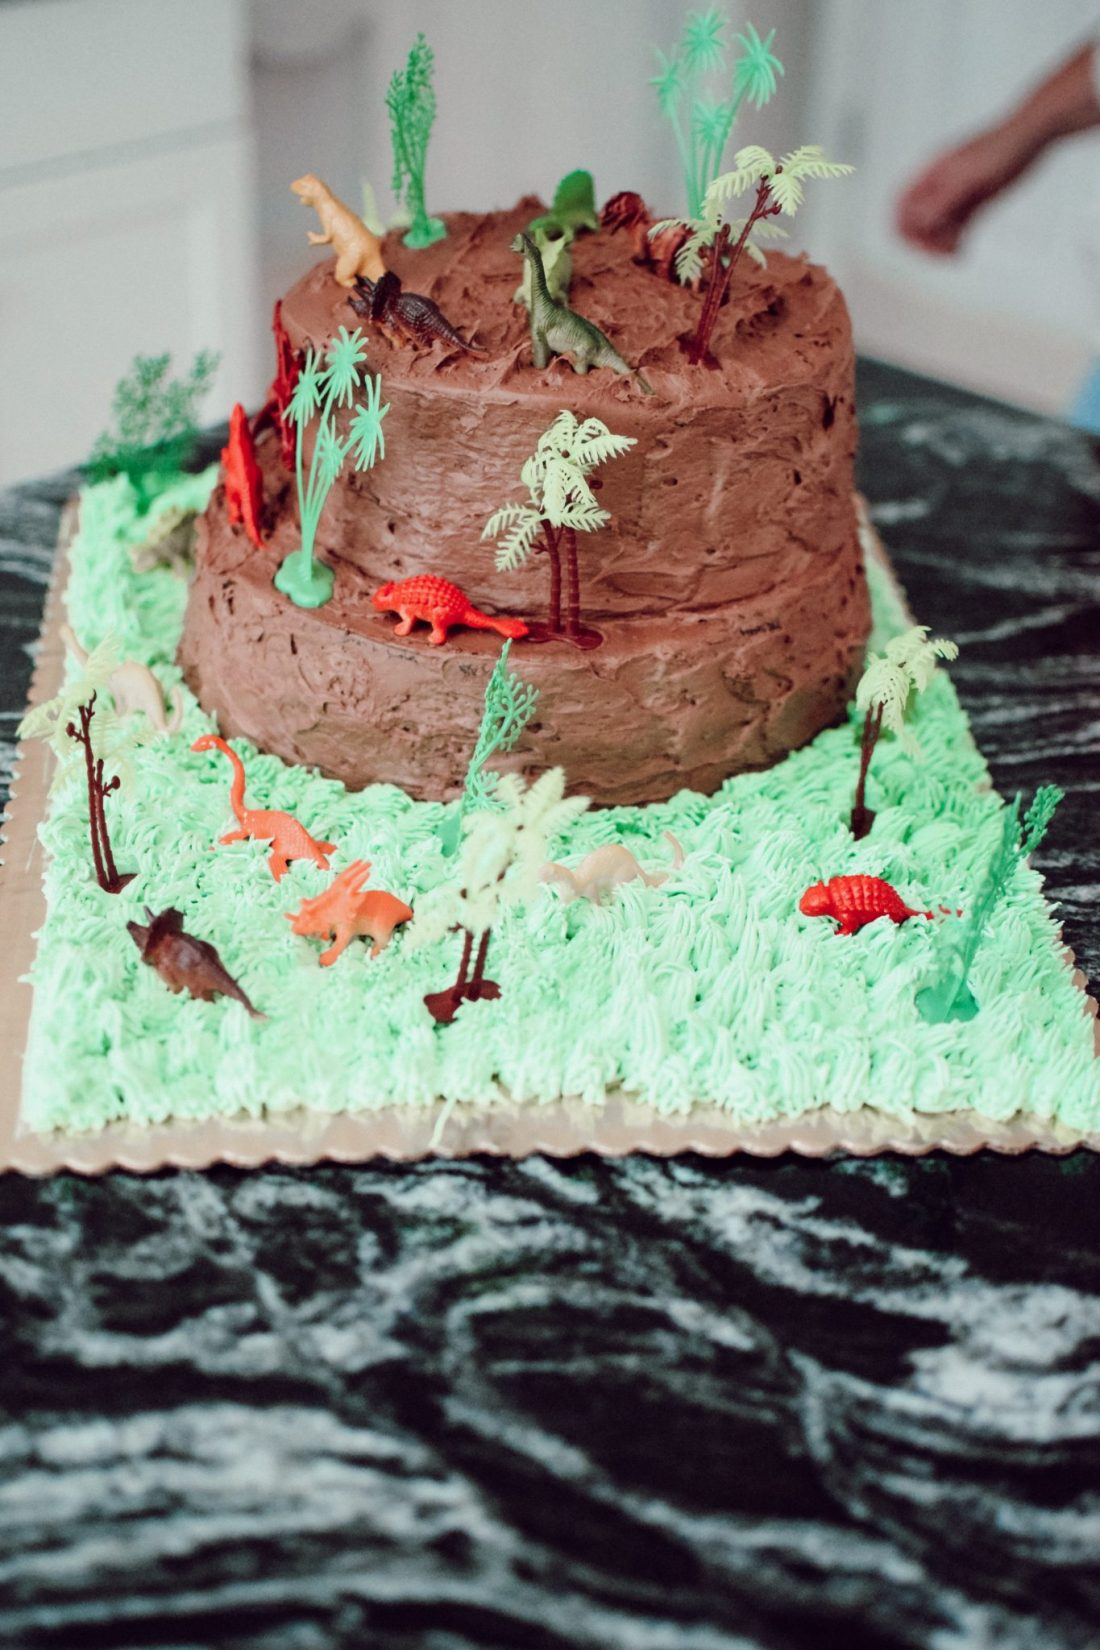 Chocolate Jurassic Themed Cake